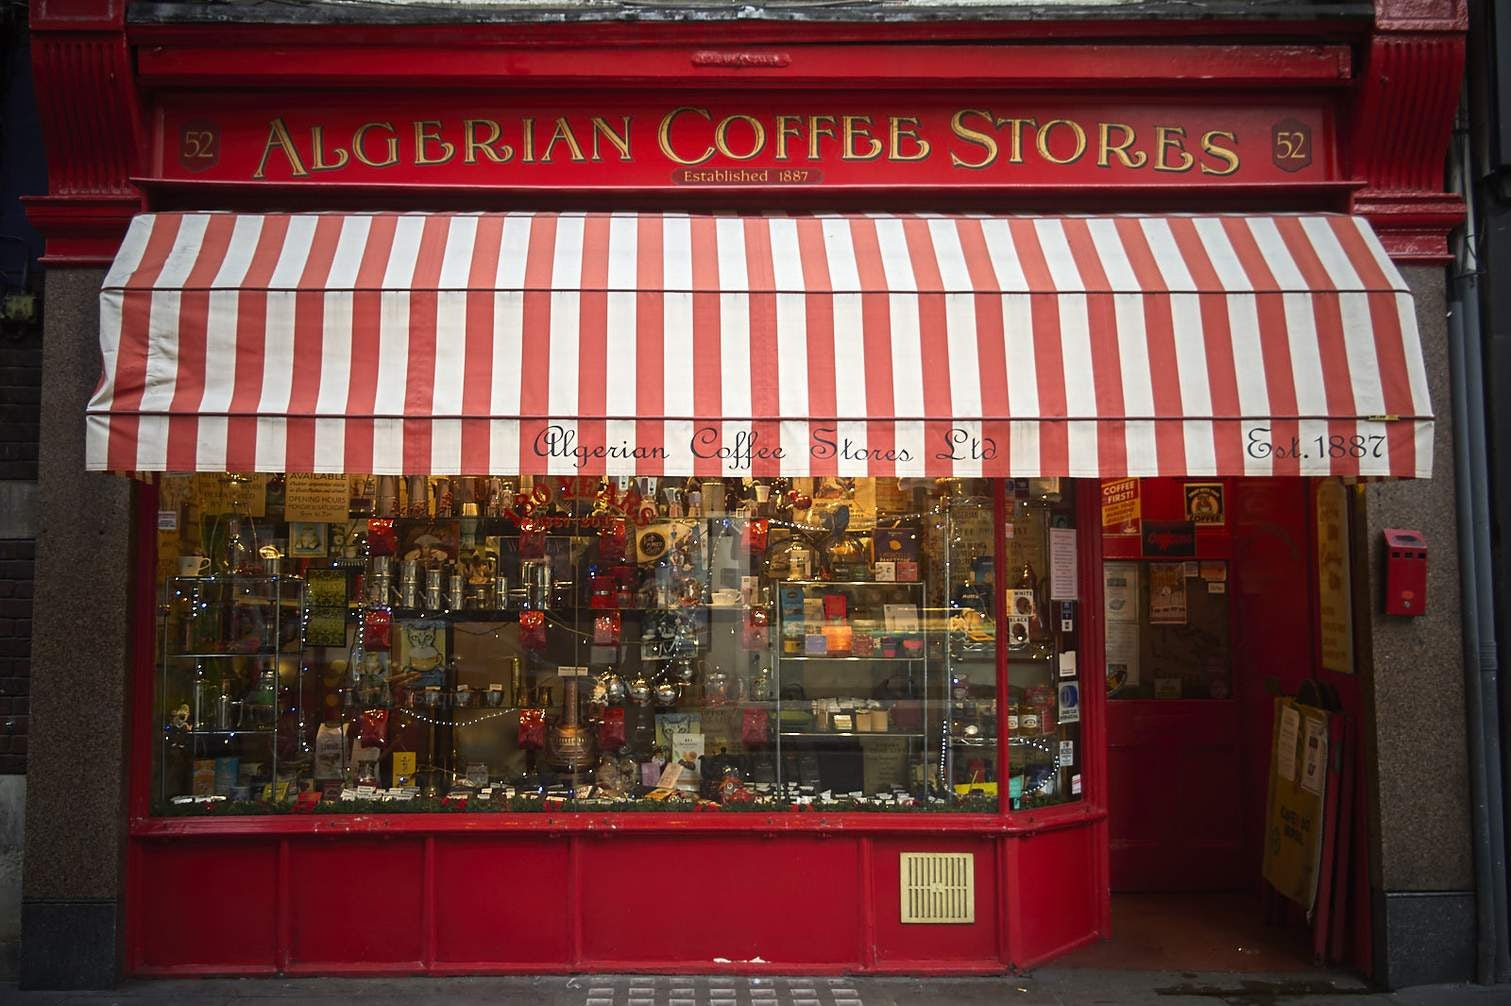 street view of the Algerian Coffee Stores